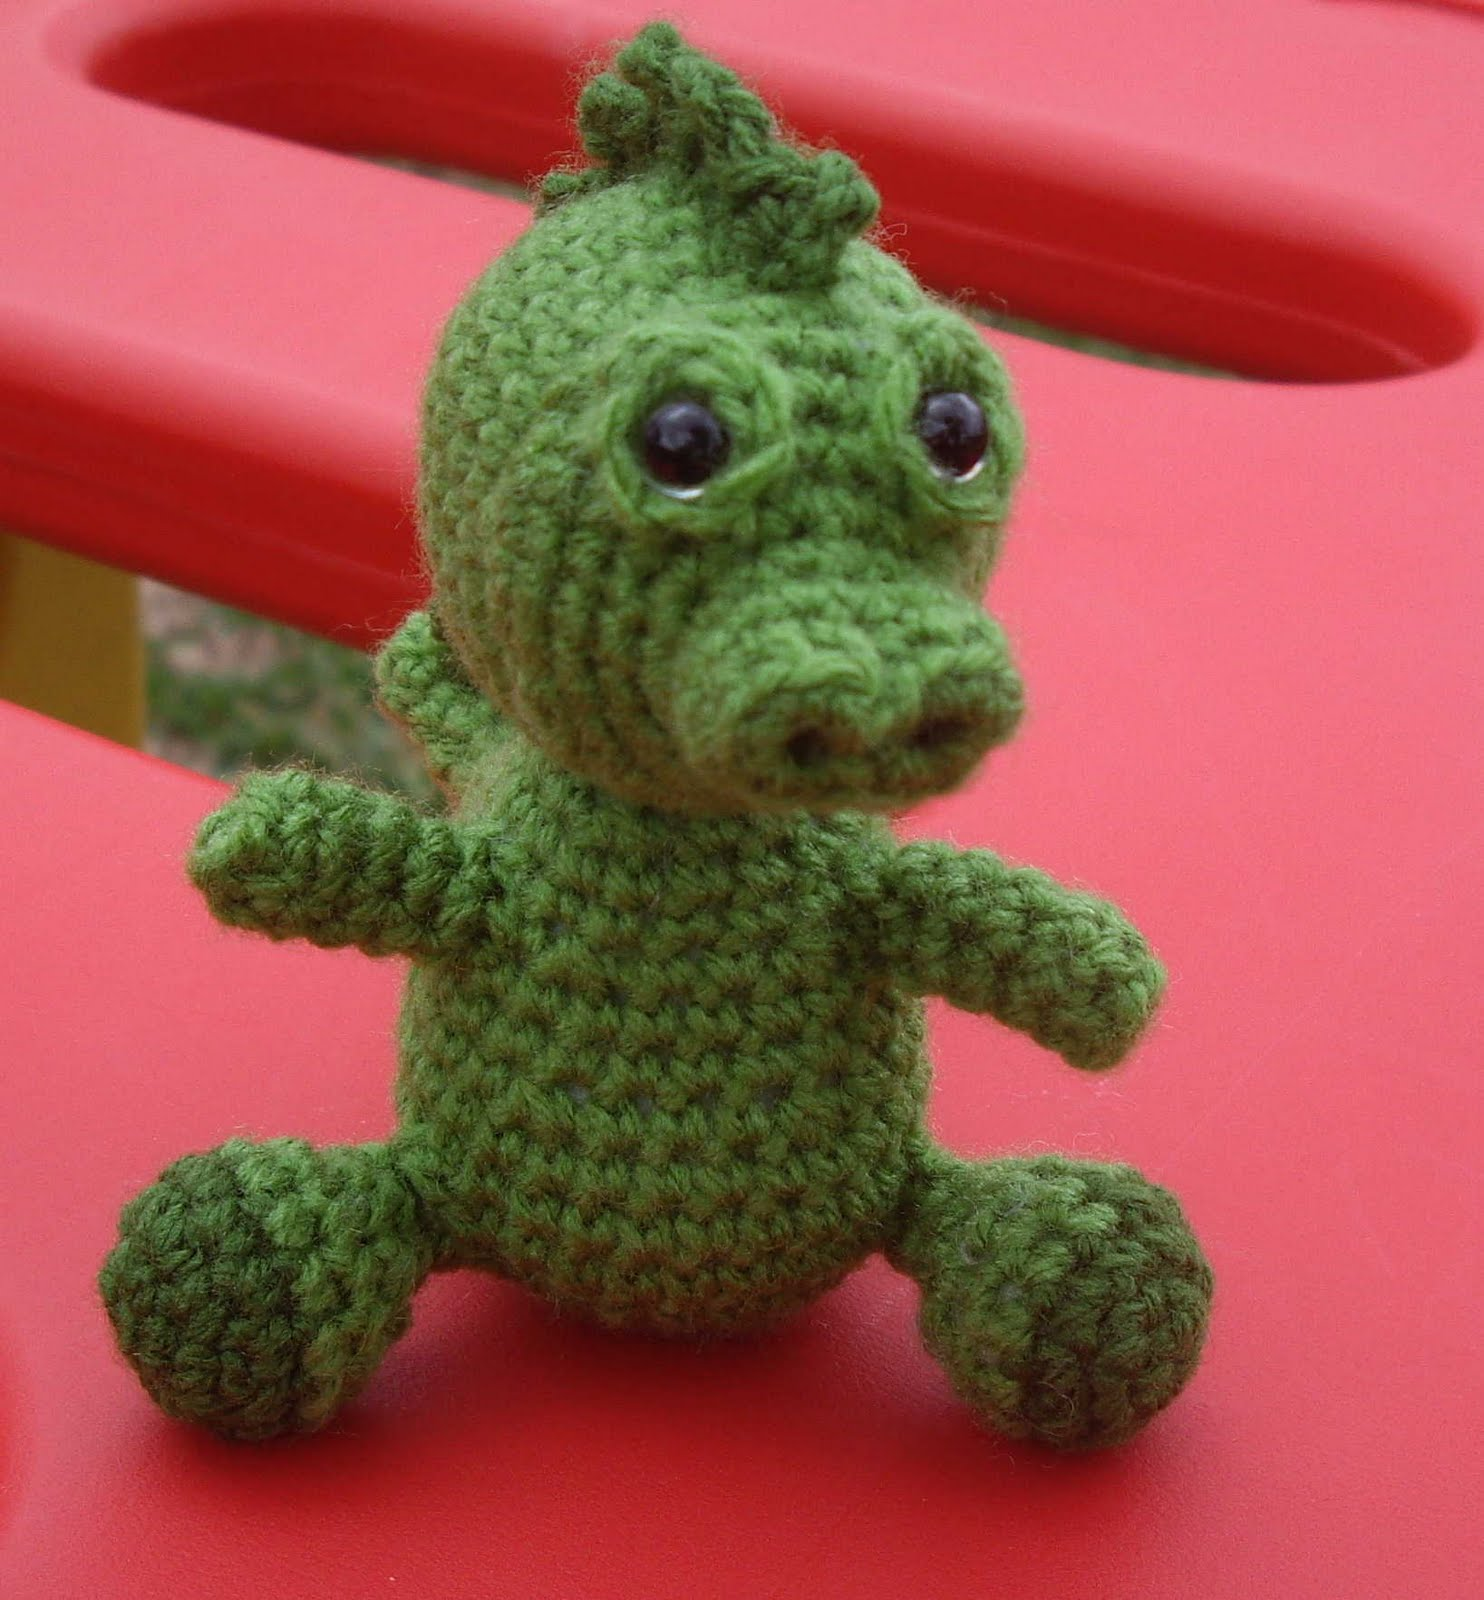 Crochet Dragon : 2000 Free Amigurumi Patterns: Soren the Baby Dragon